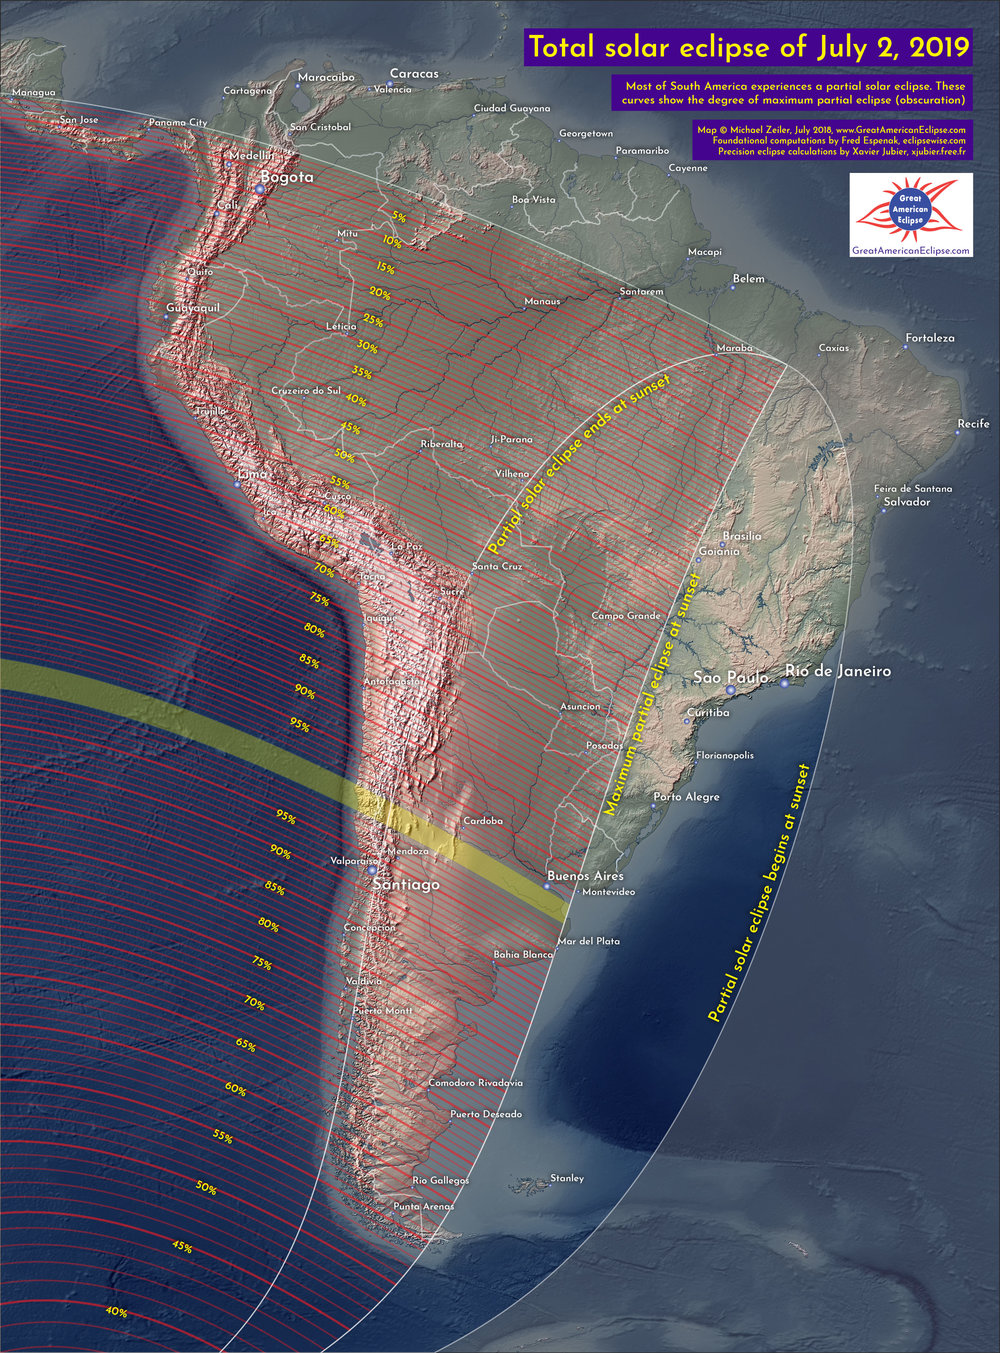 Eclipse obscuration across South America.